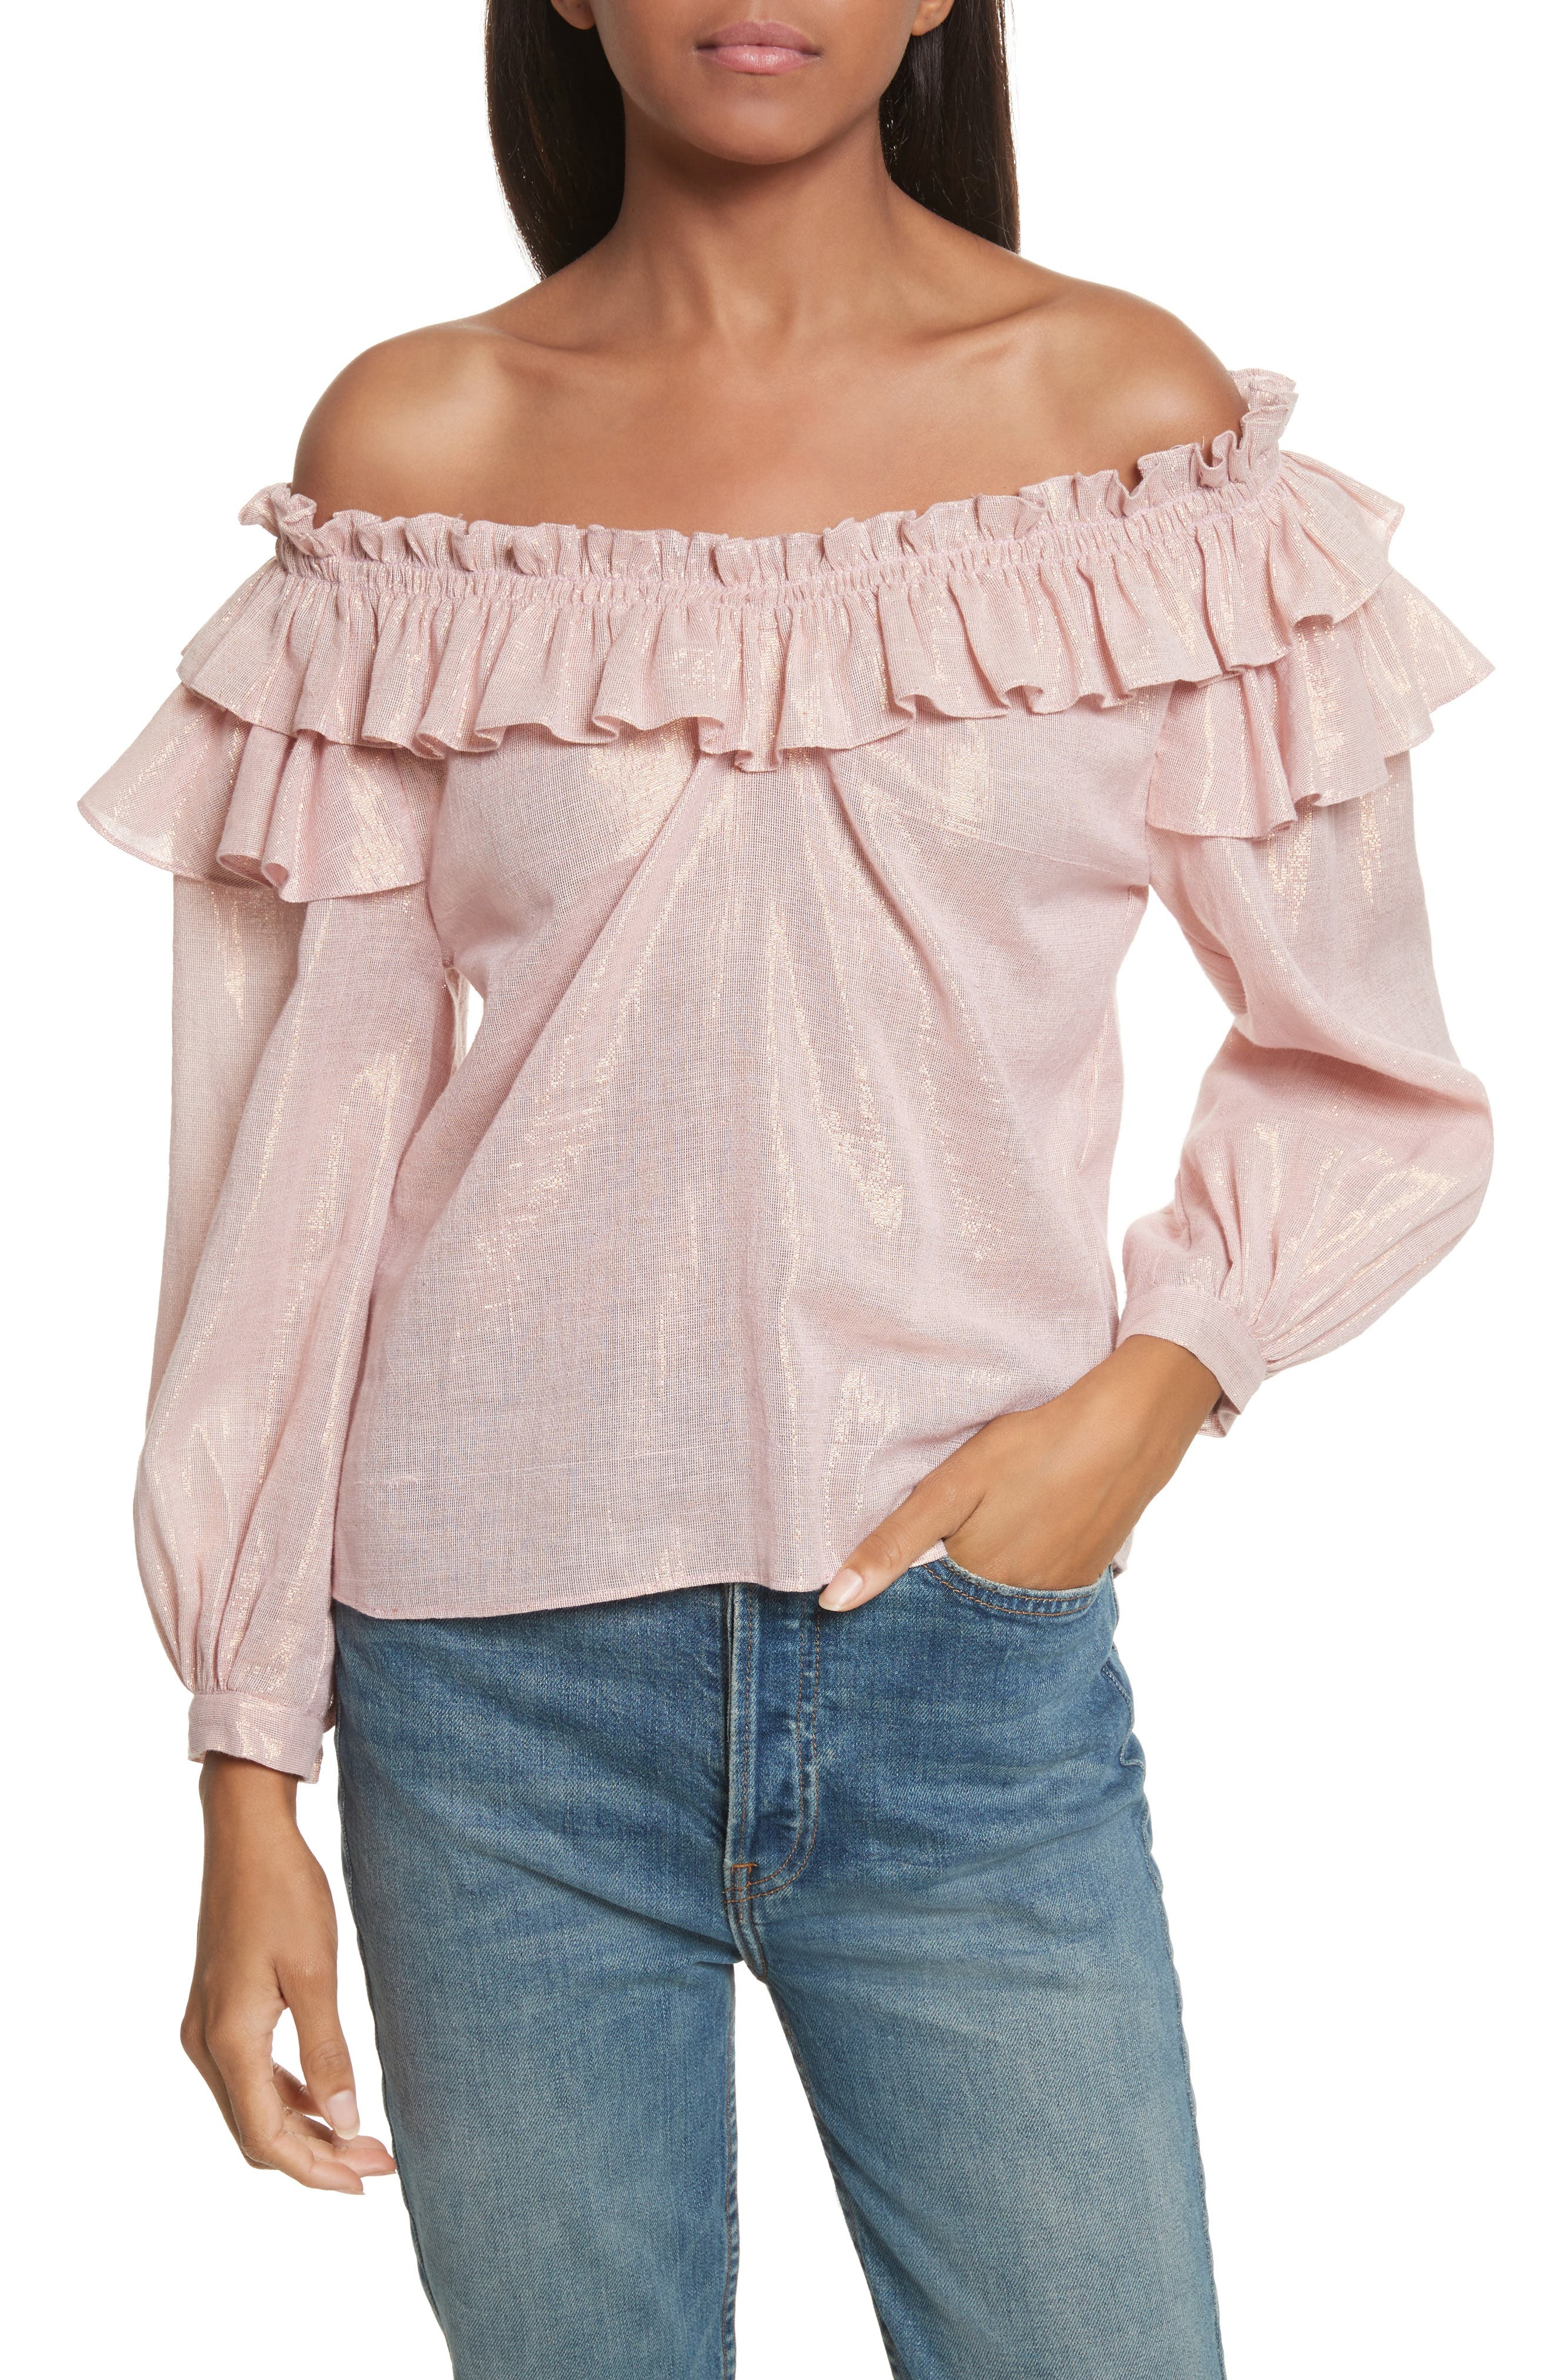 Main Image - La Vie Rebecca Taylor Off the Shoulder Metallic Ruffled Top